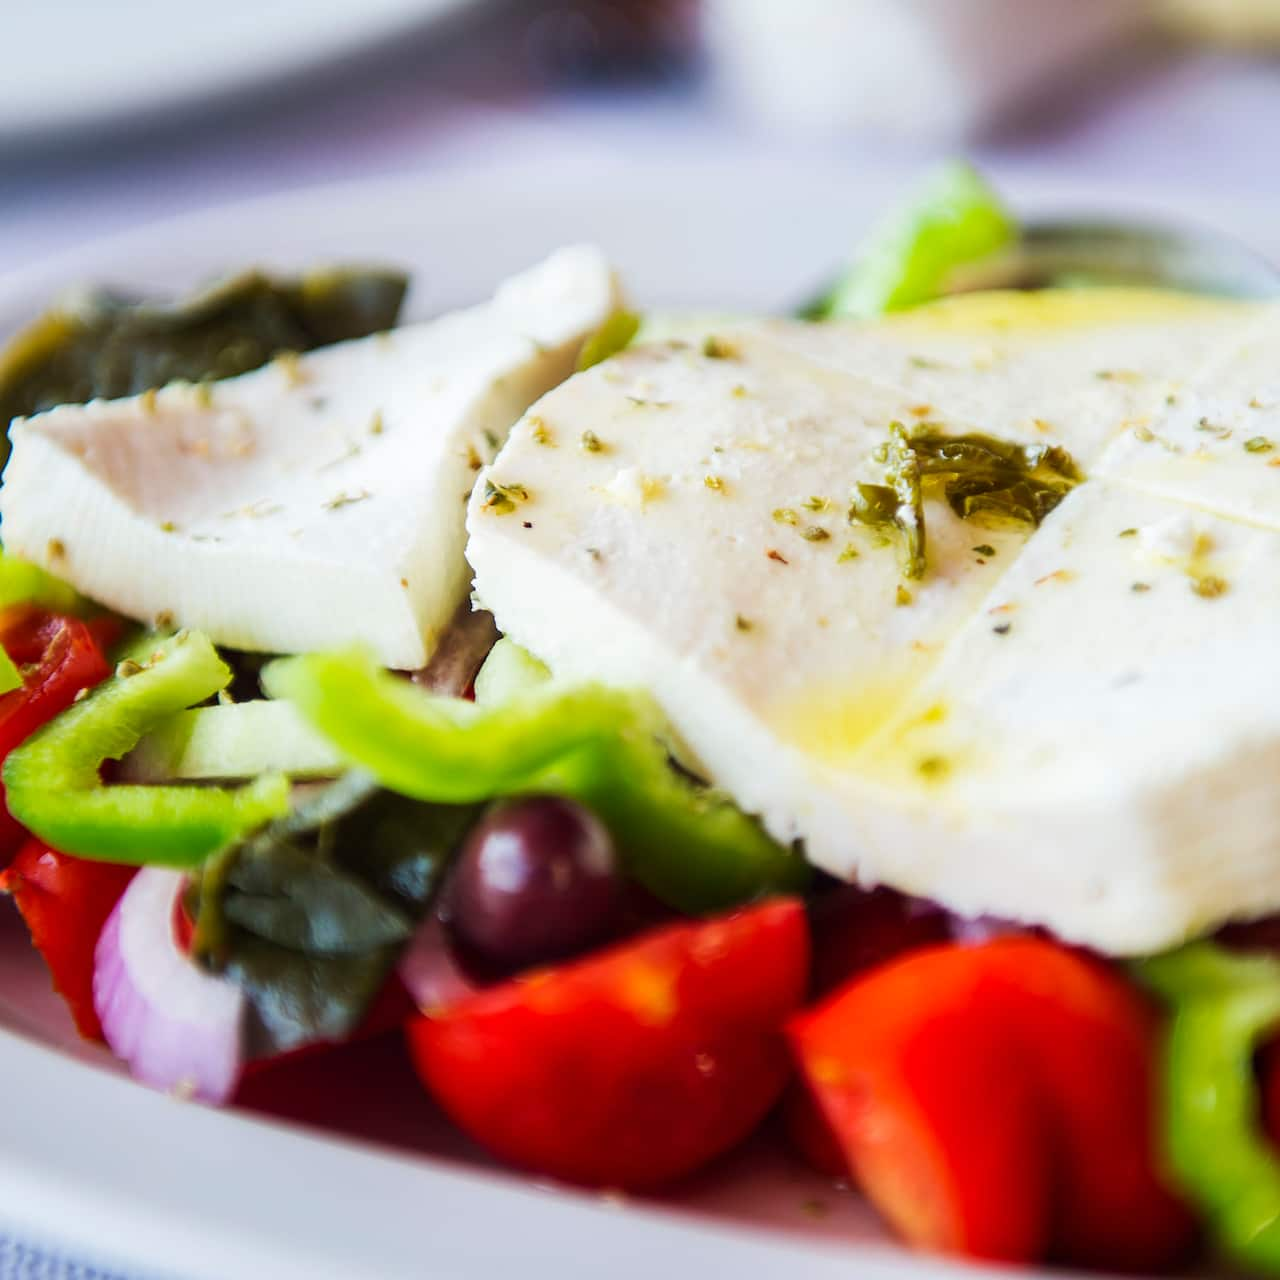 A plate with several pieces of mozzarella cheese, green peppers, tomatoes and Greek olives